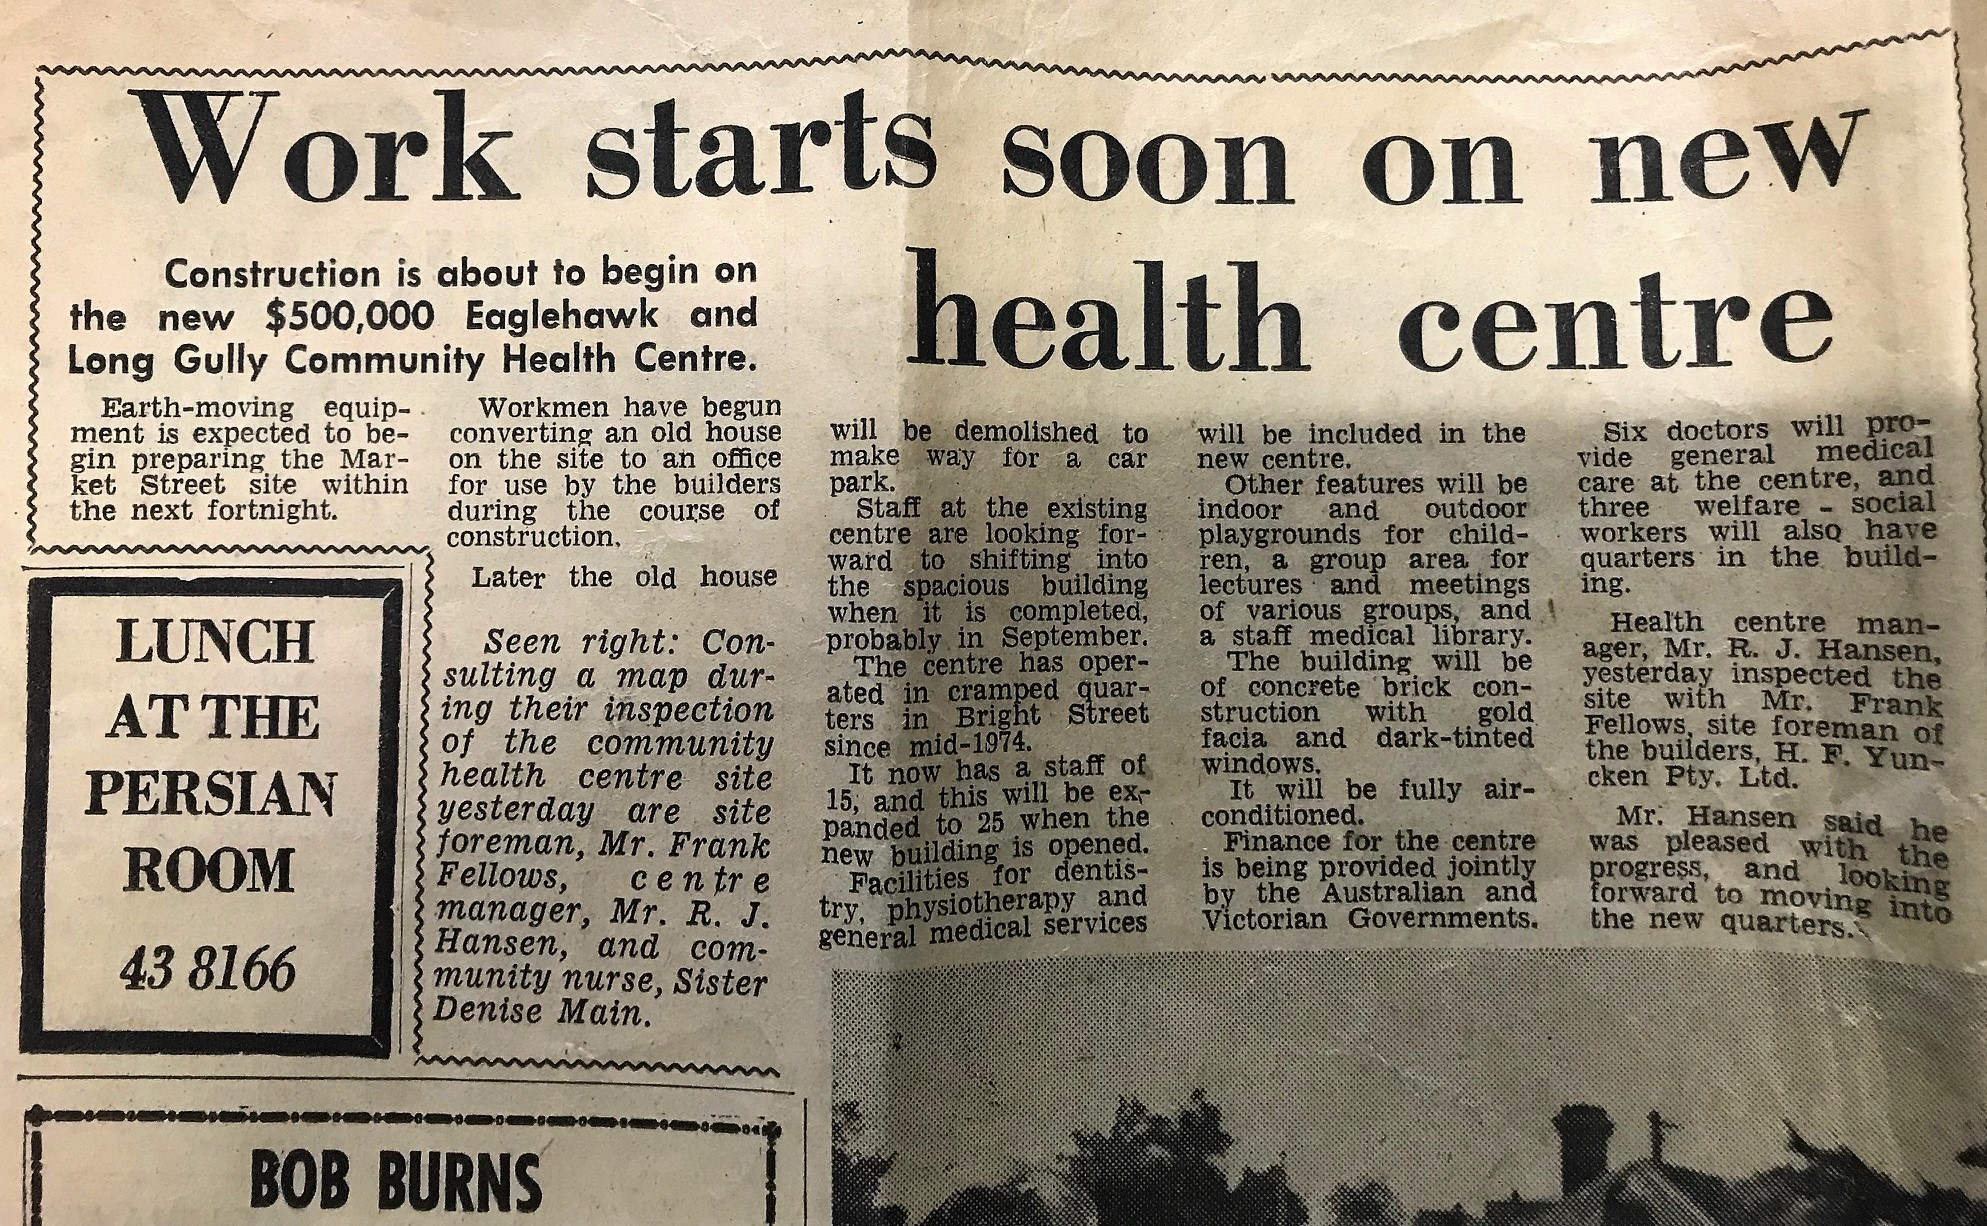 A Bendigo Advertiser story announcing start of construction on the new Eaglehawk Long Gully Community Health Centre.